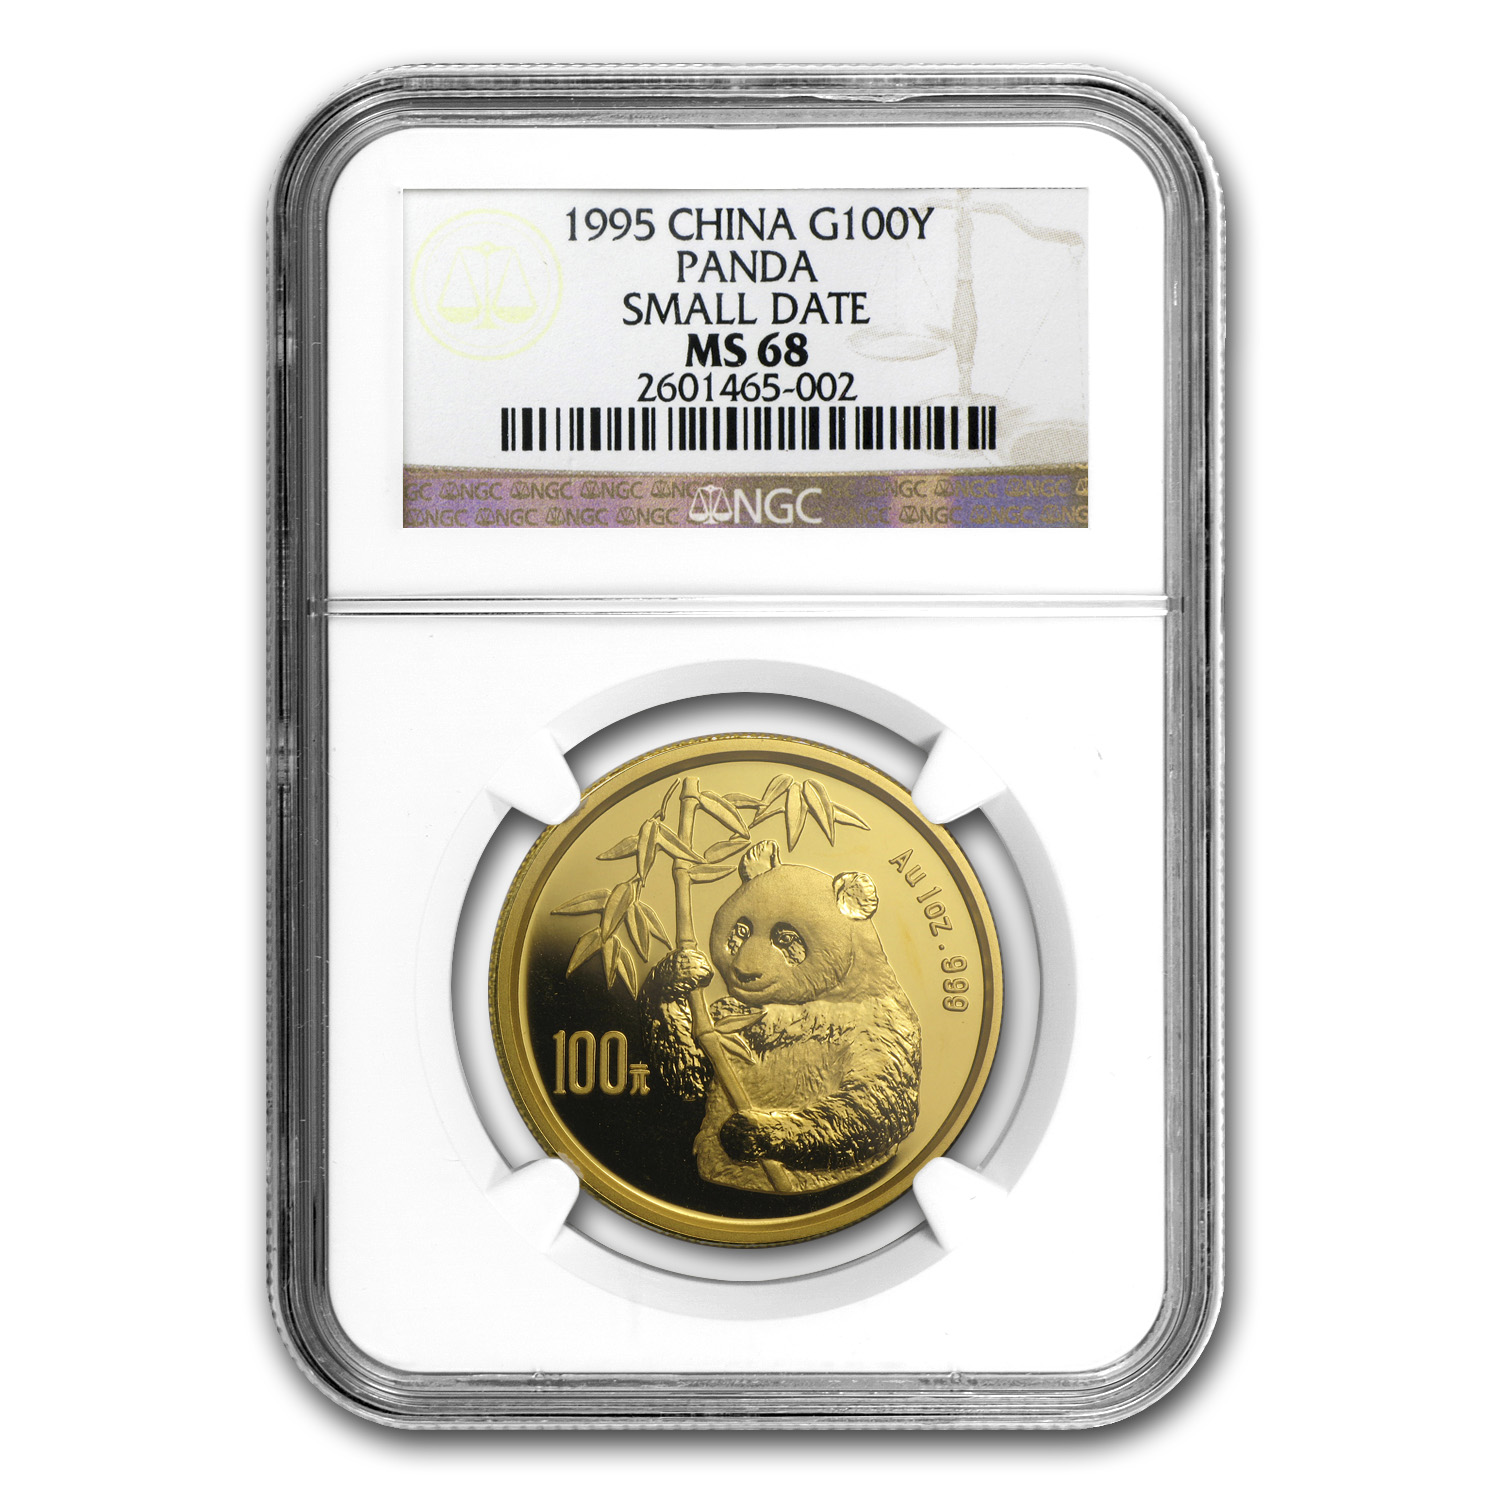 1995 1 oz Gold Chinese Panda MS-68 NGC - Small Date